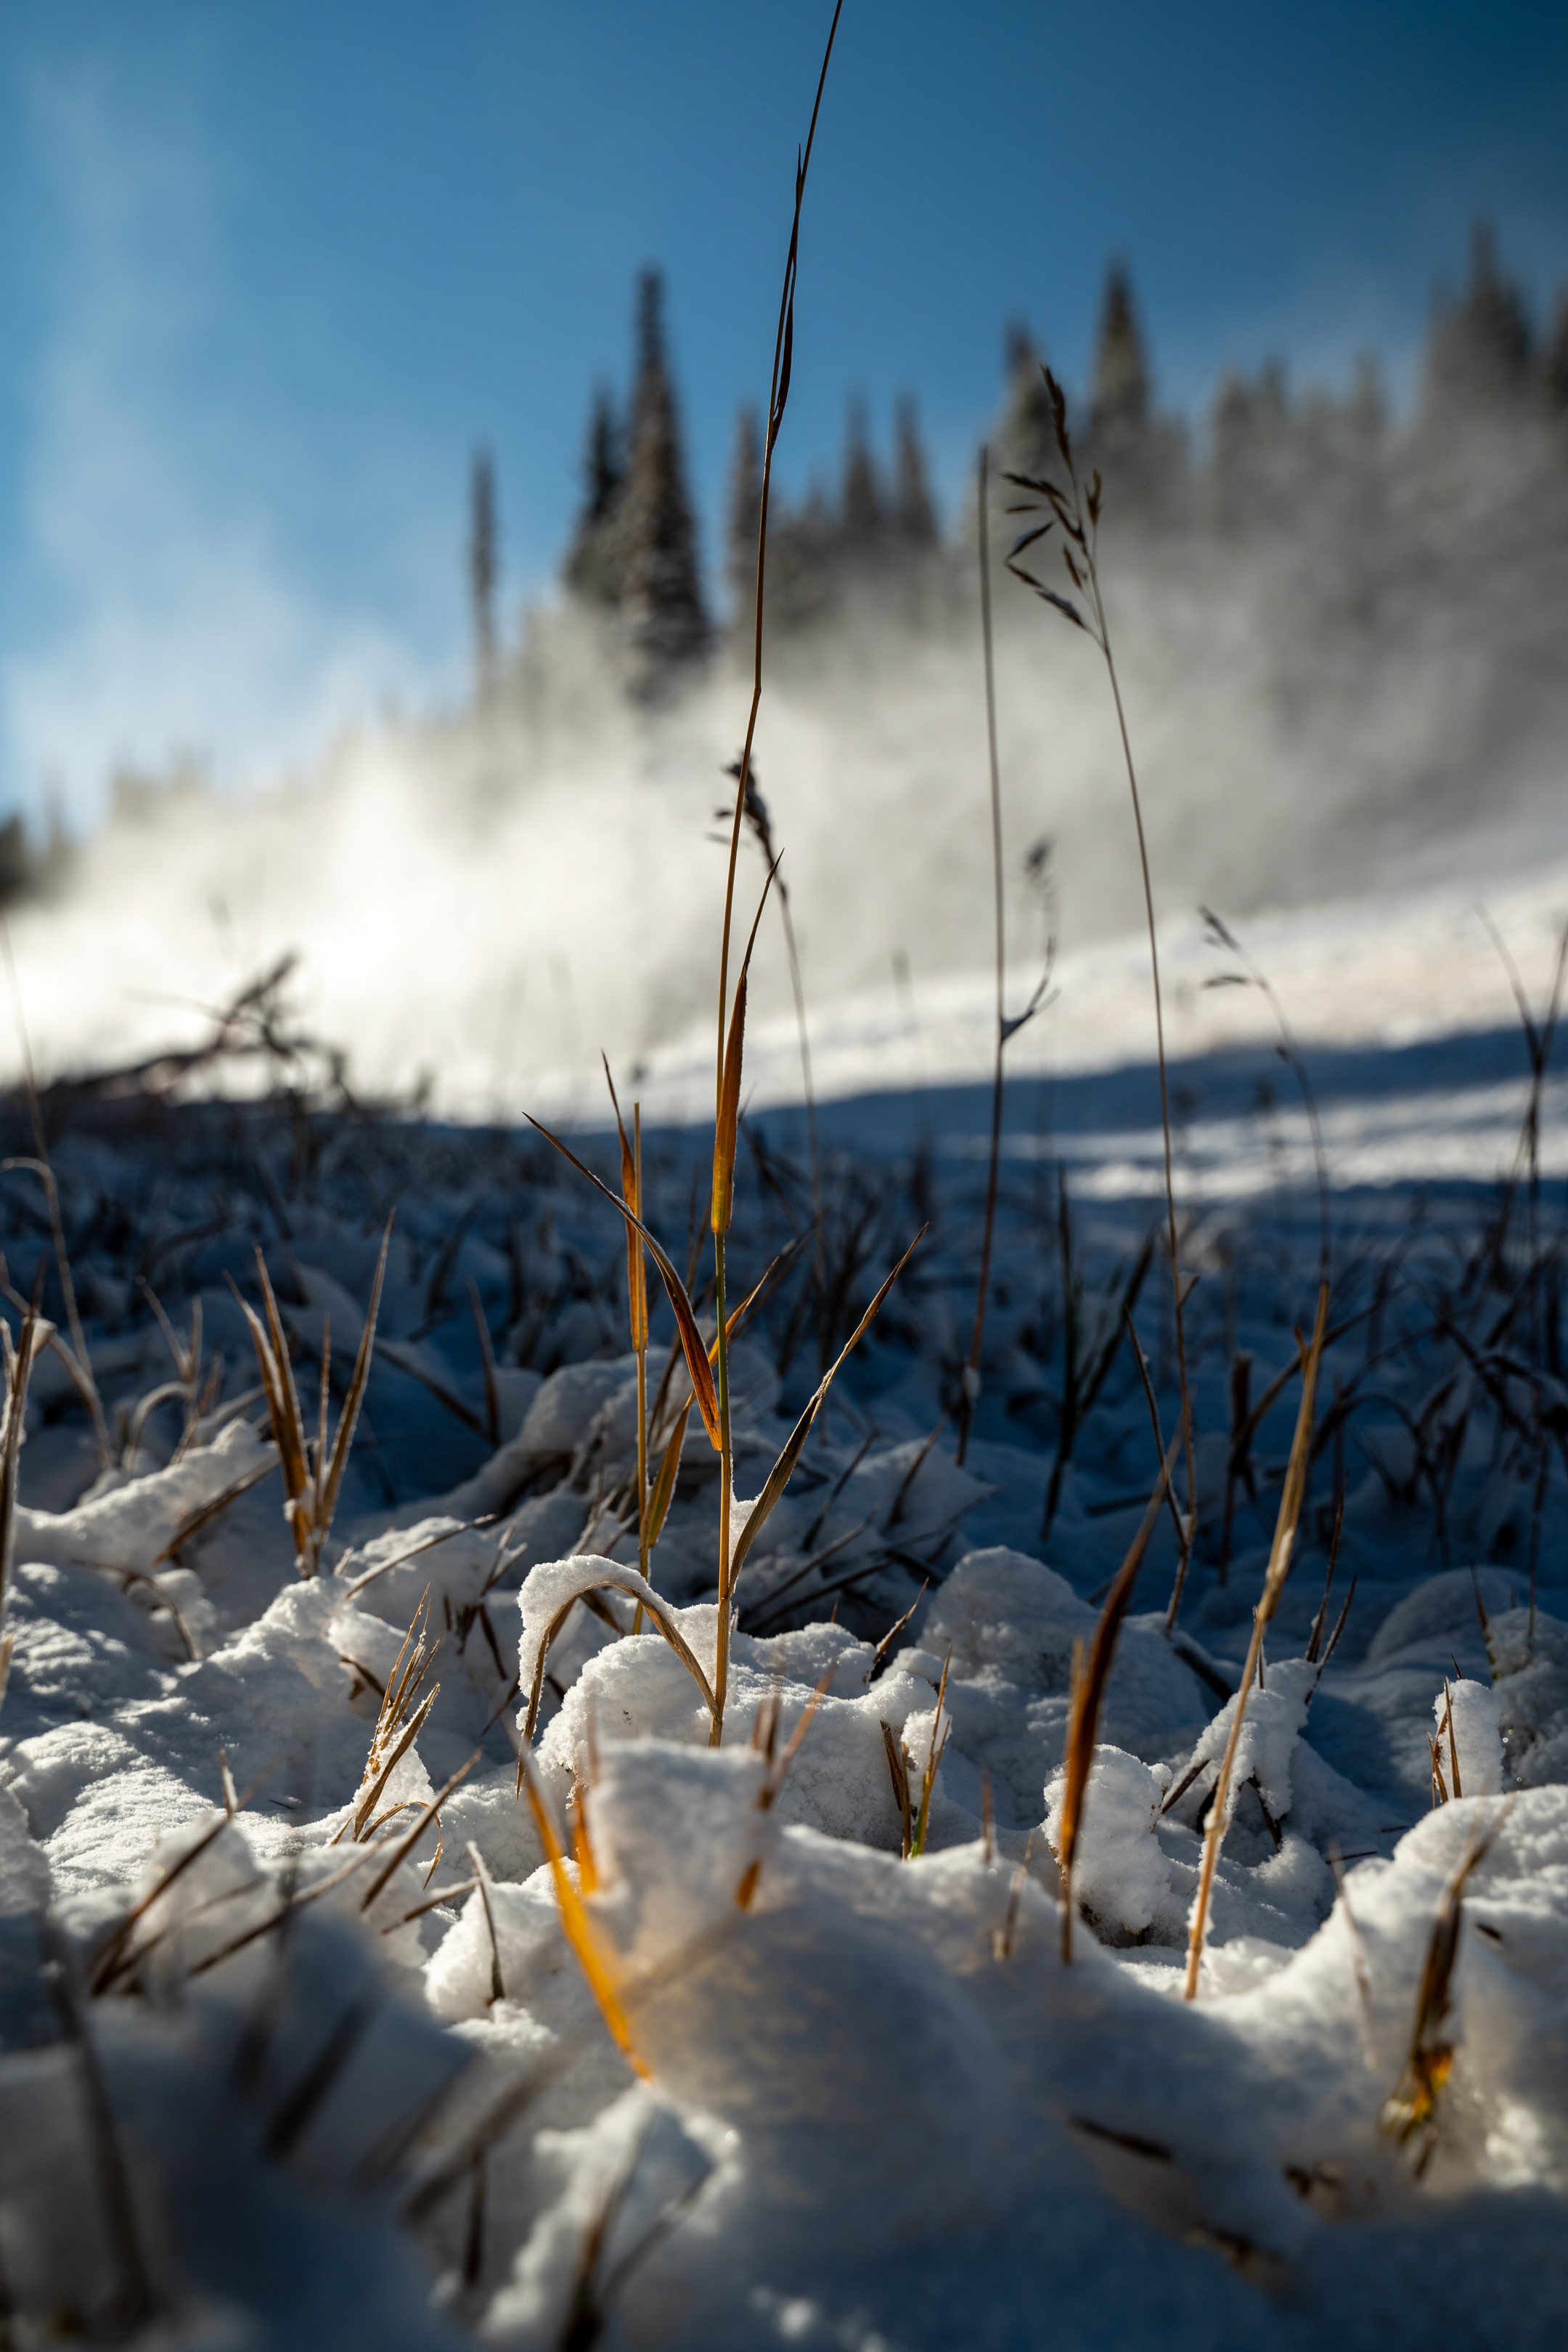 10-27-20-_-Snow-and-Snowmaking-web-12